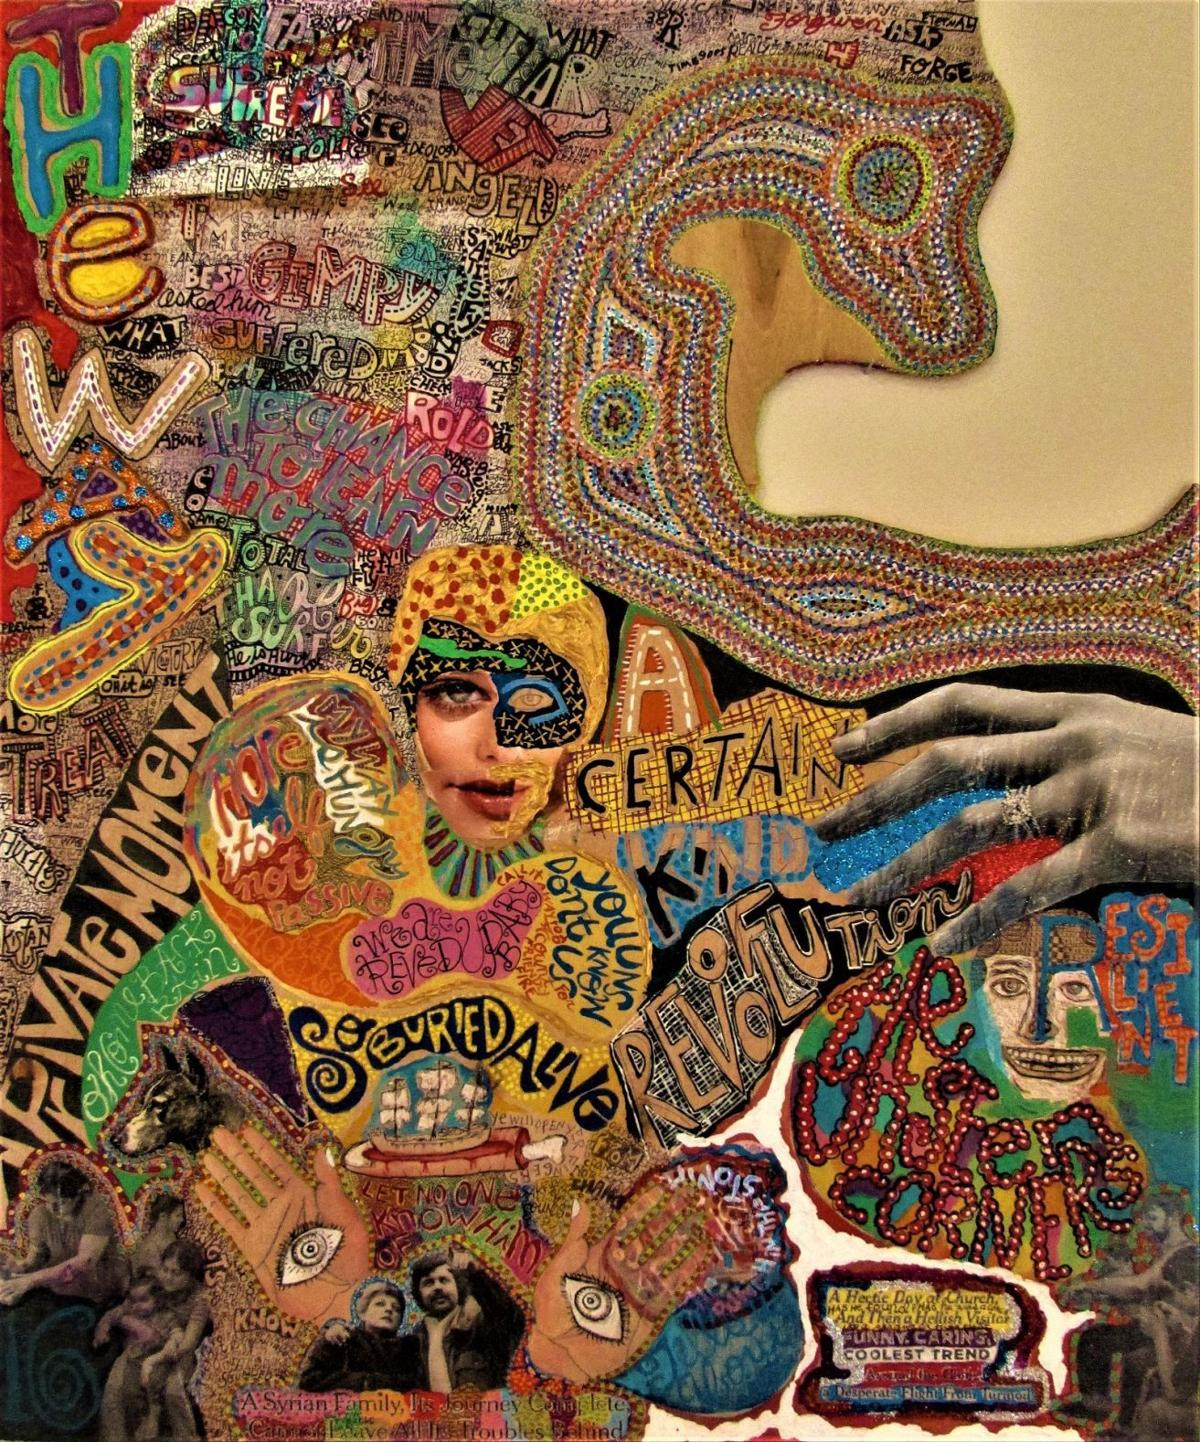 A show of his own: Known for aiding other artists, Bruce Burris ...